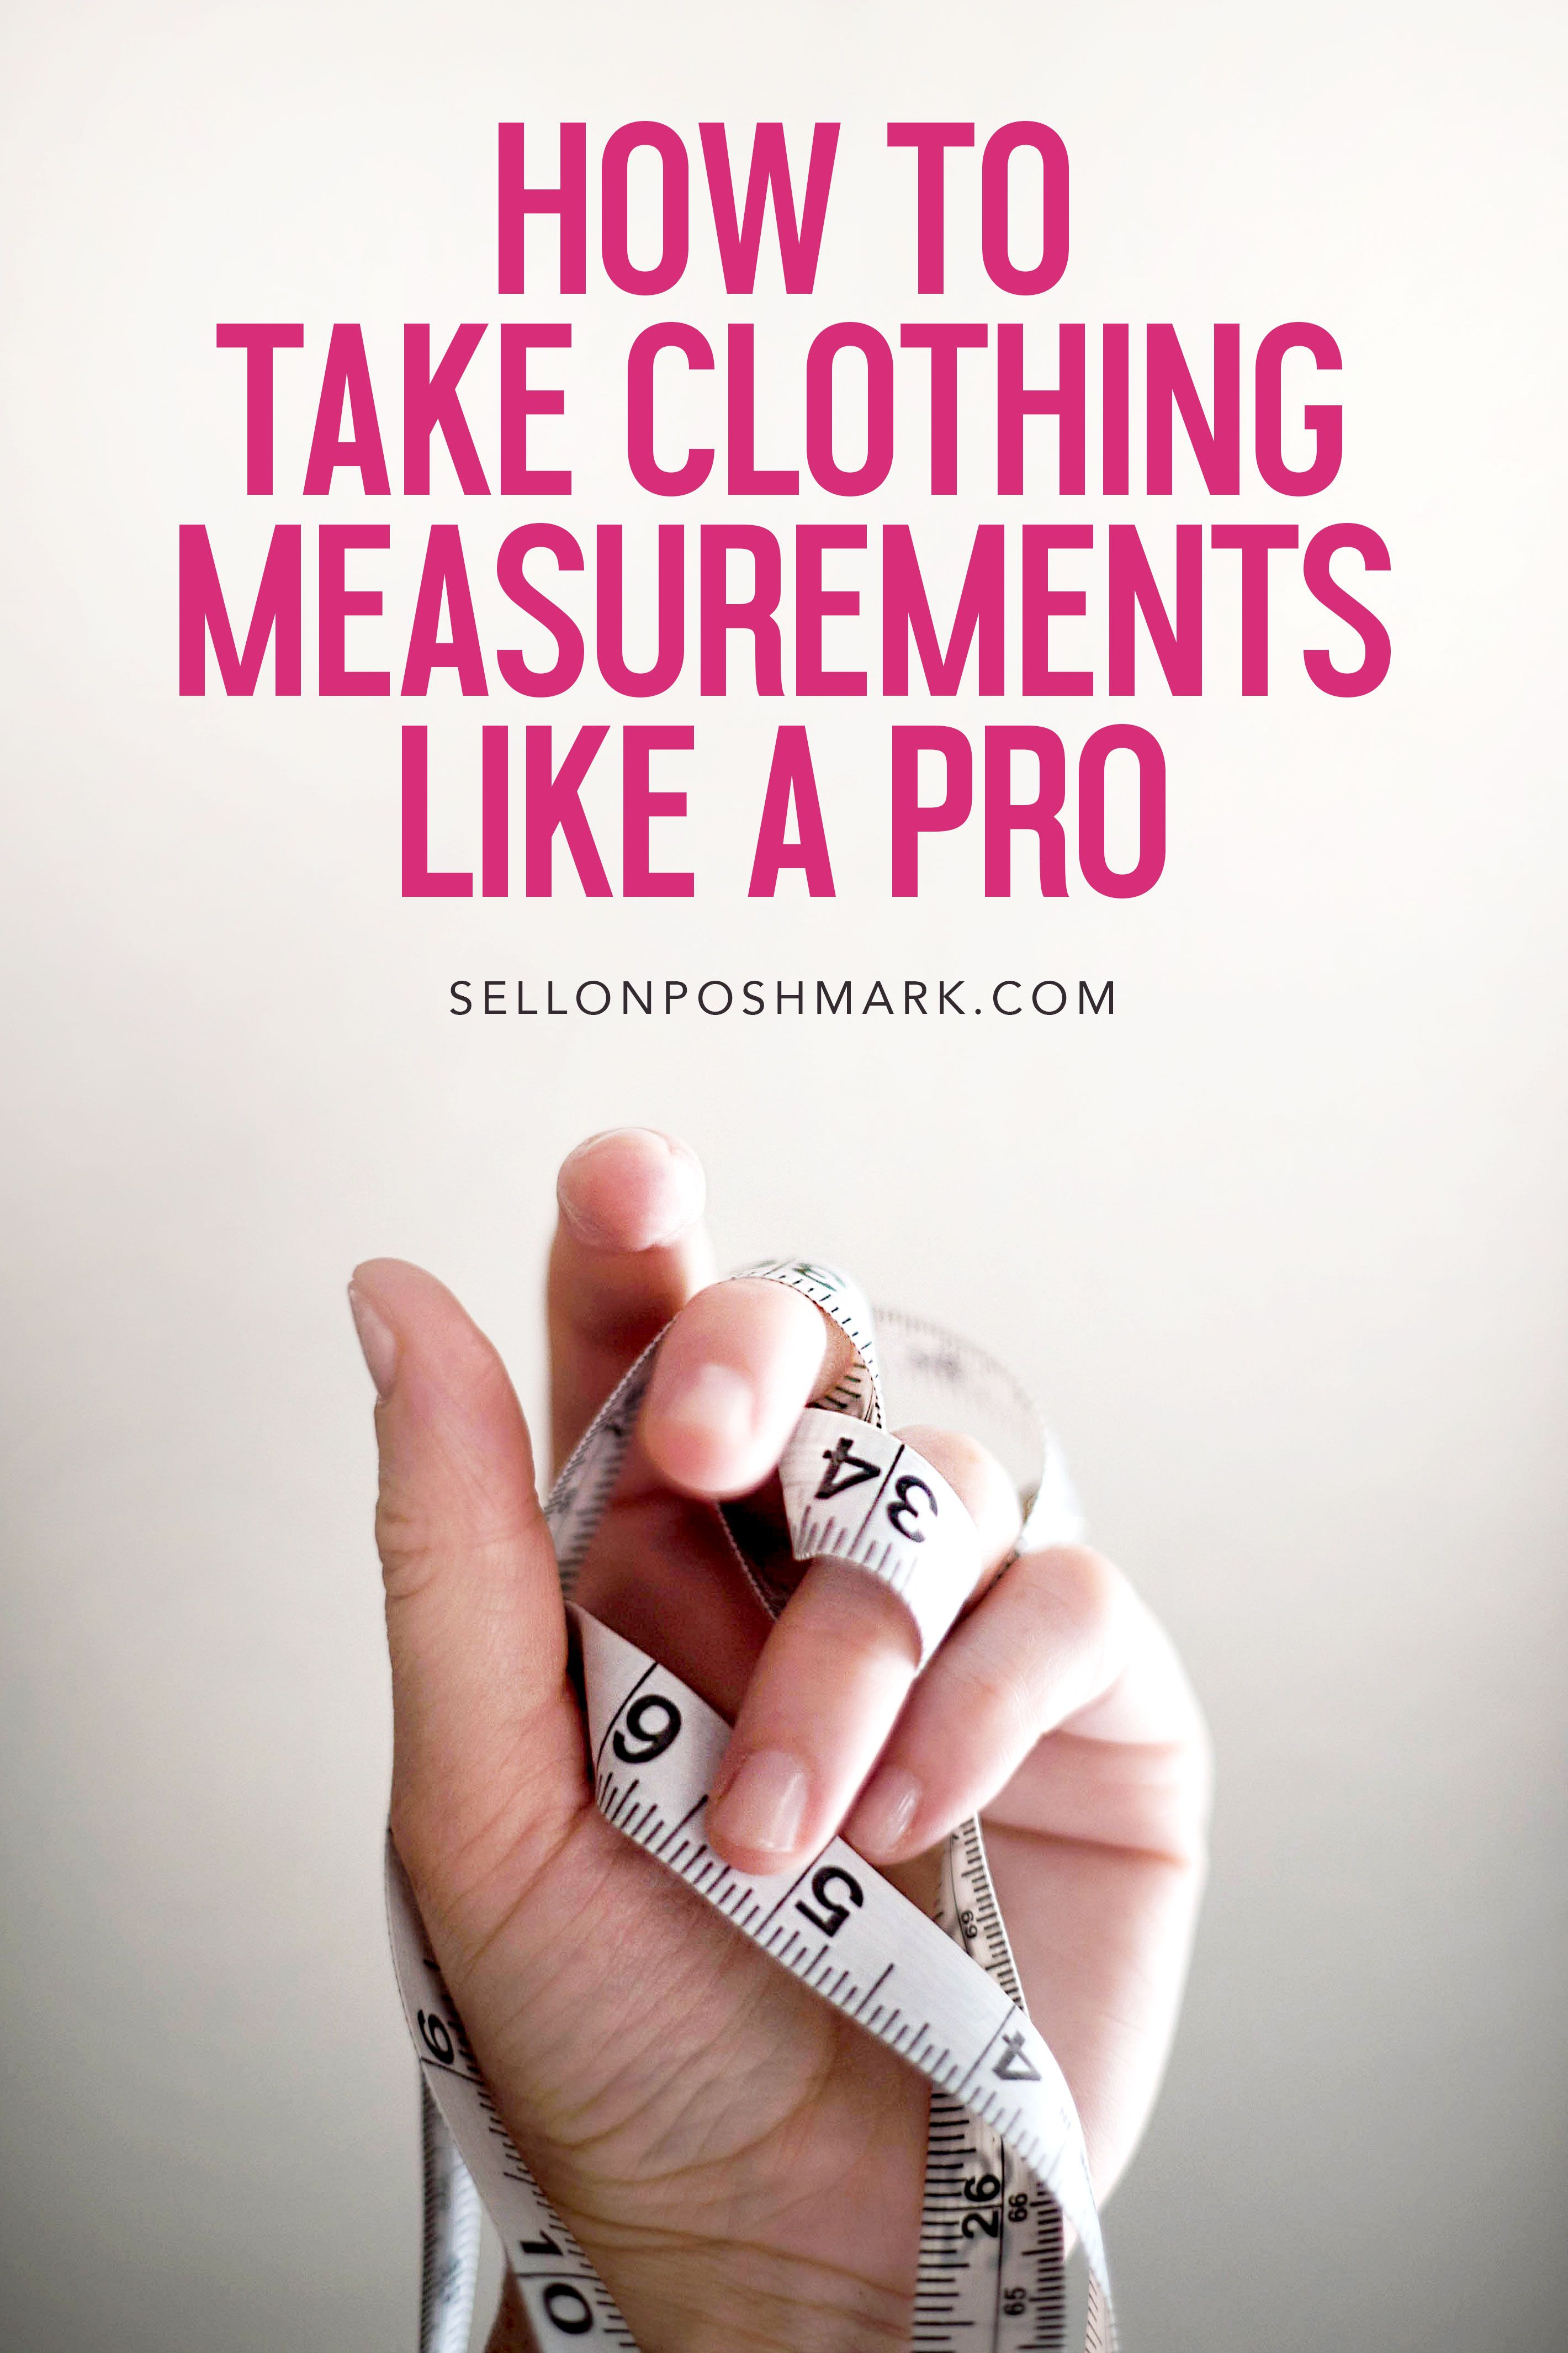 Clothing measurements how to include them in your